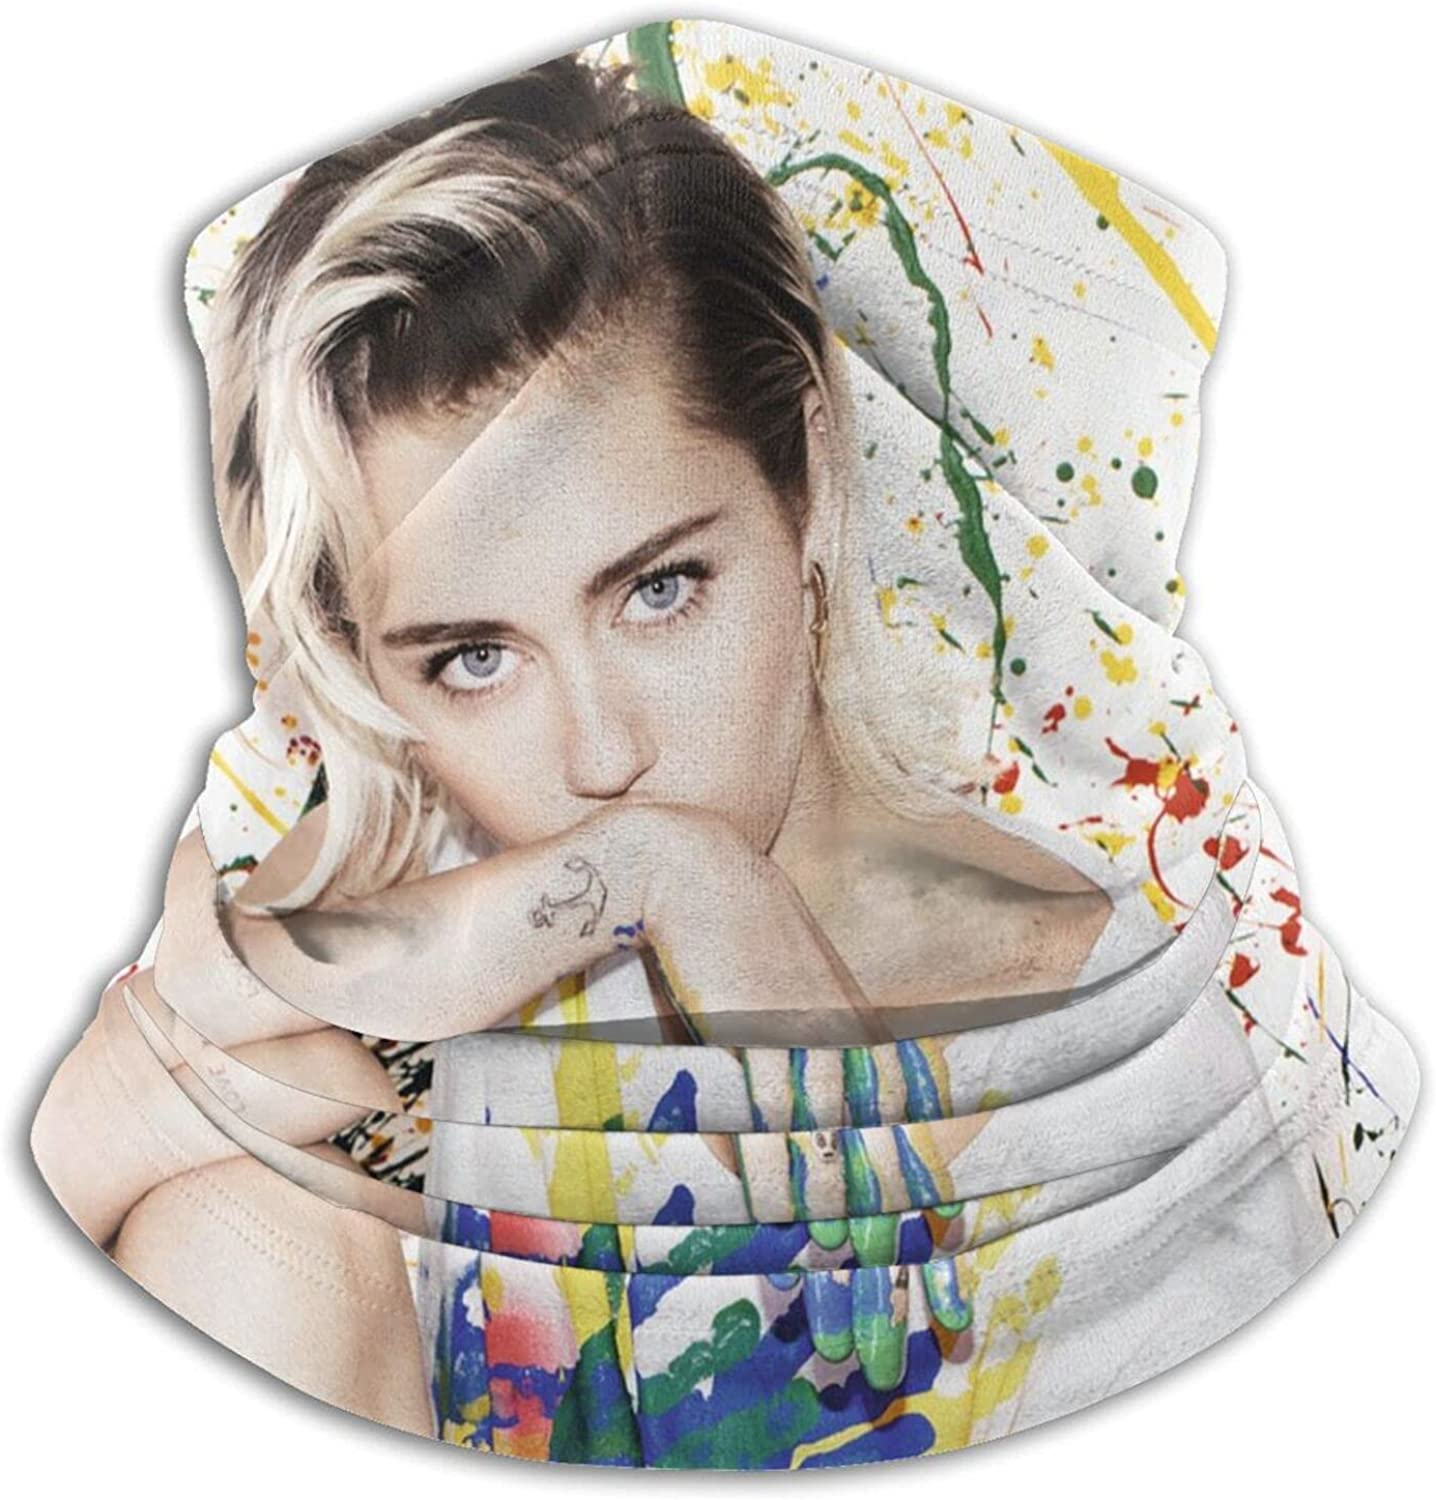 Miley Cyrus Unisex Neck Gaiter Face Mask Men Woman Multifunction Balaclava Face Cover,Cycling Mask,Sport Neck Gaiter,Hiking Scarf,Fishing Mask,Sunscreen Breathable Bandana, Motorcycle Face Cover